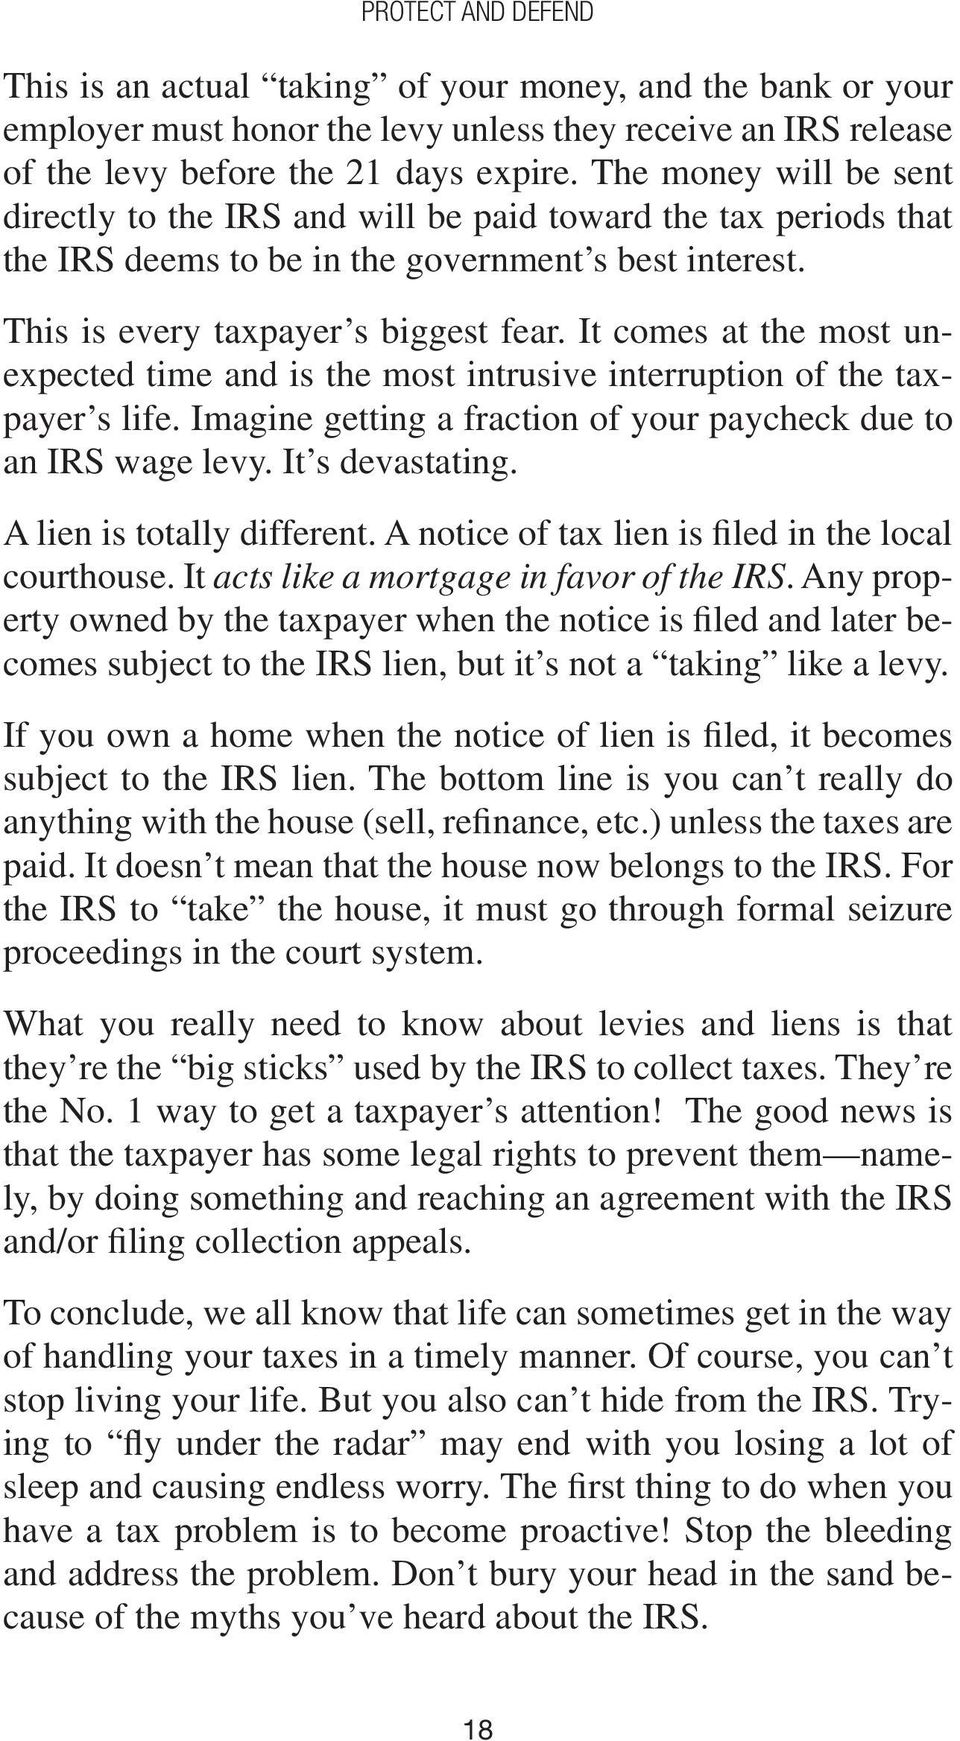 It comes at the most unexpected time and is the most intrusive interruption of the taxpayer s life. Imagine getting a fraction of your paycheck due to an IRS wage levy. It s devastating.